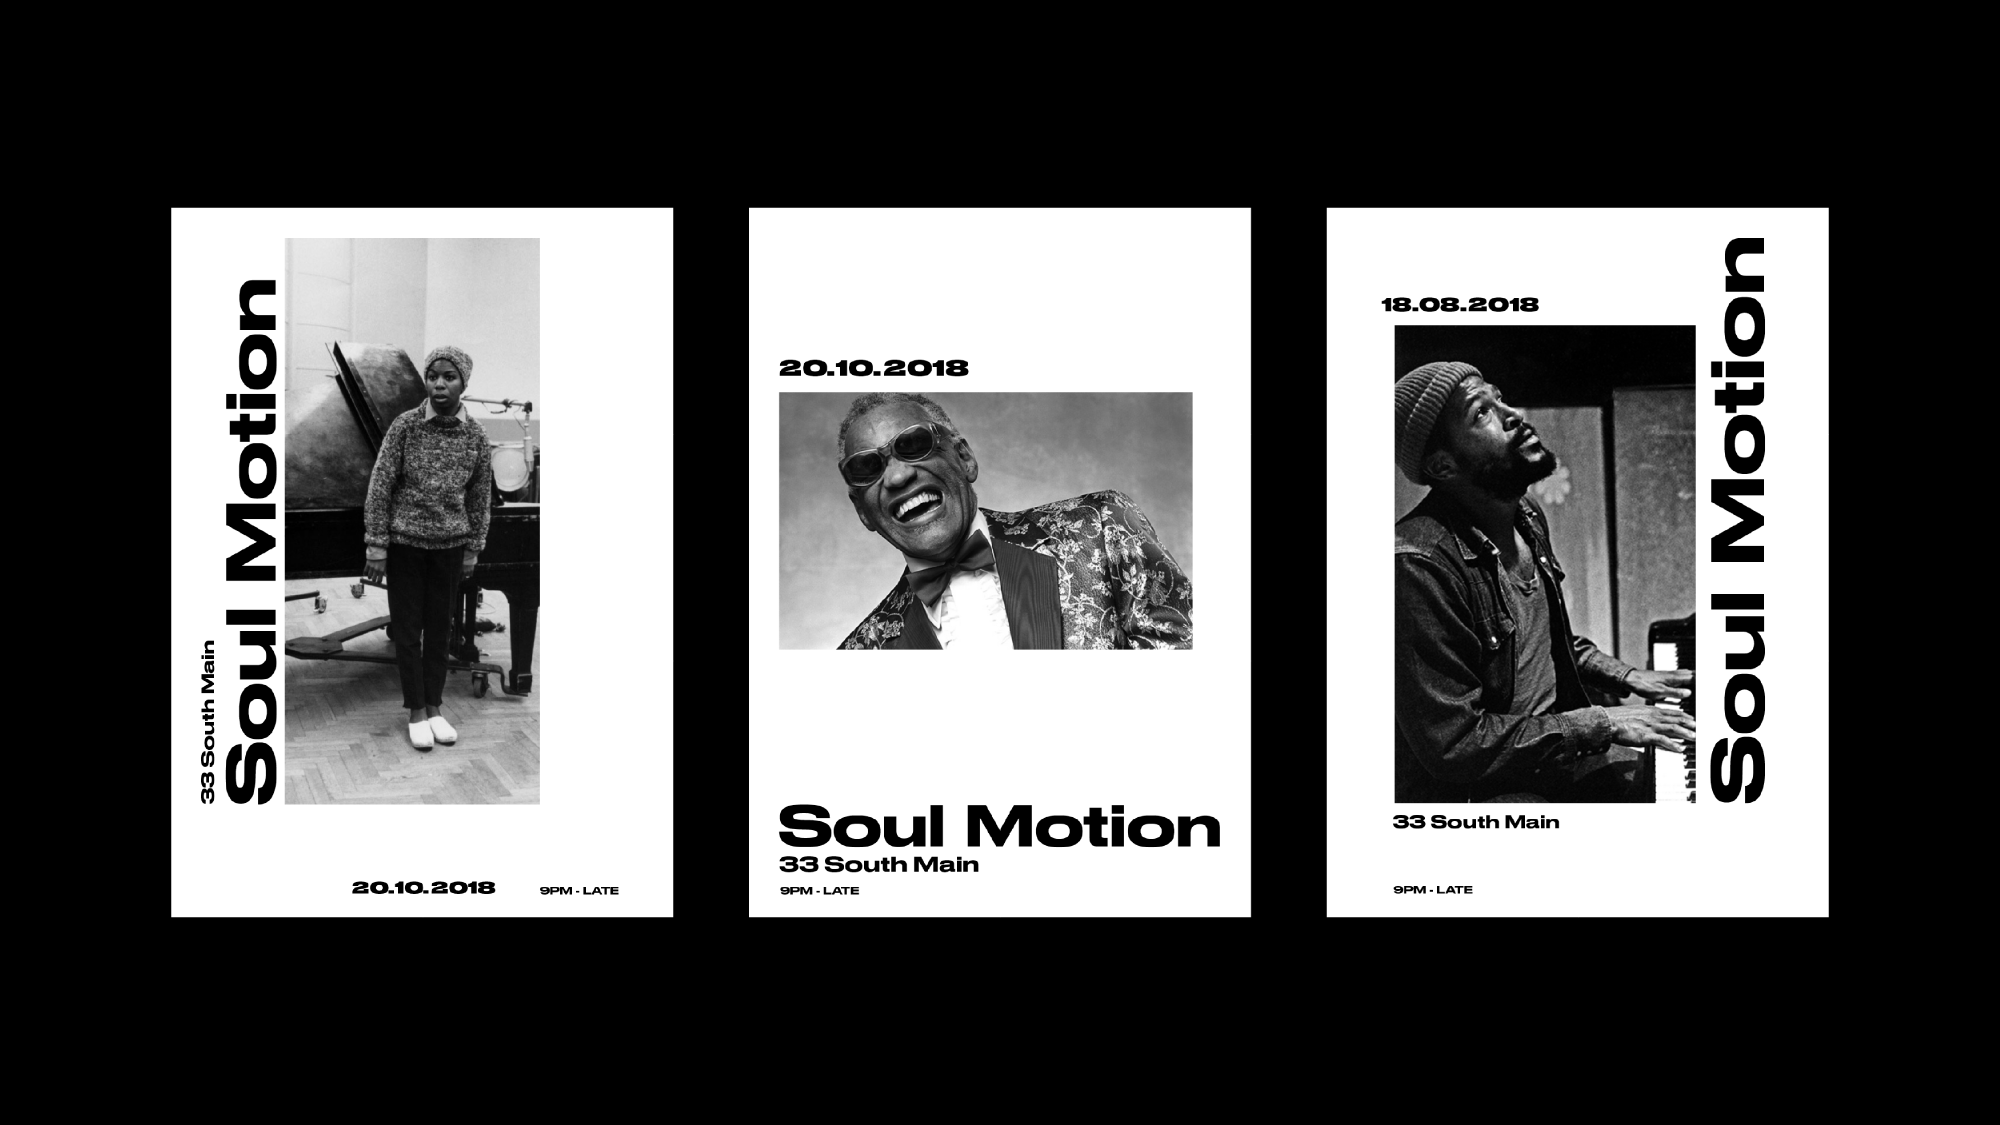 Cover image: Soul Motion